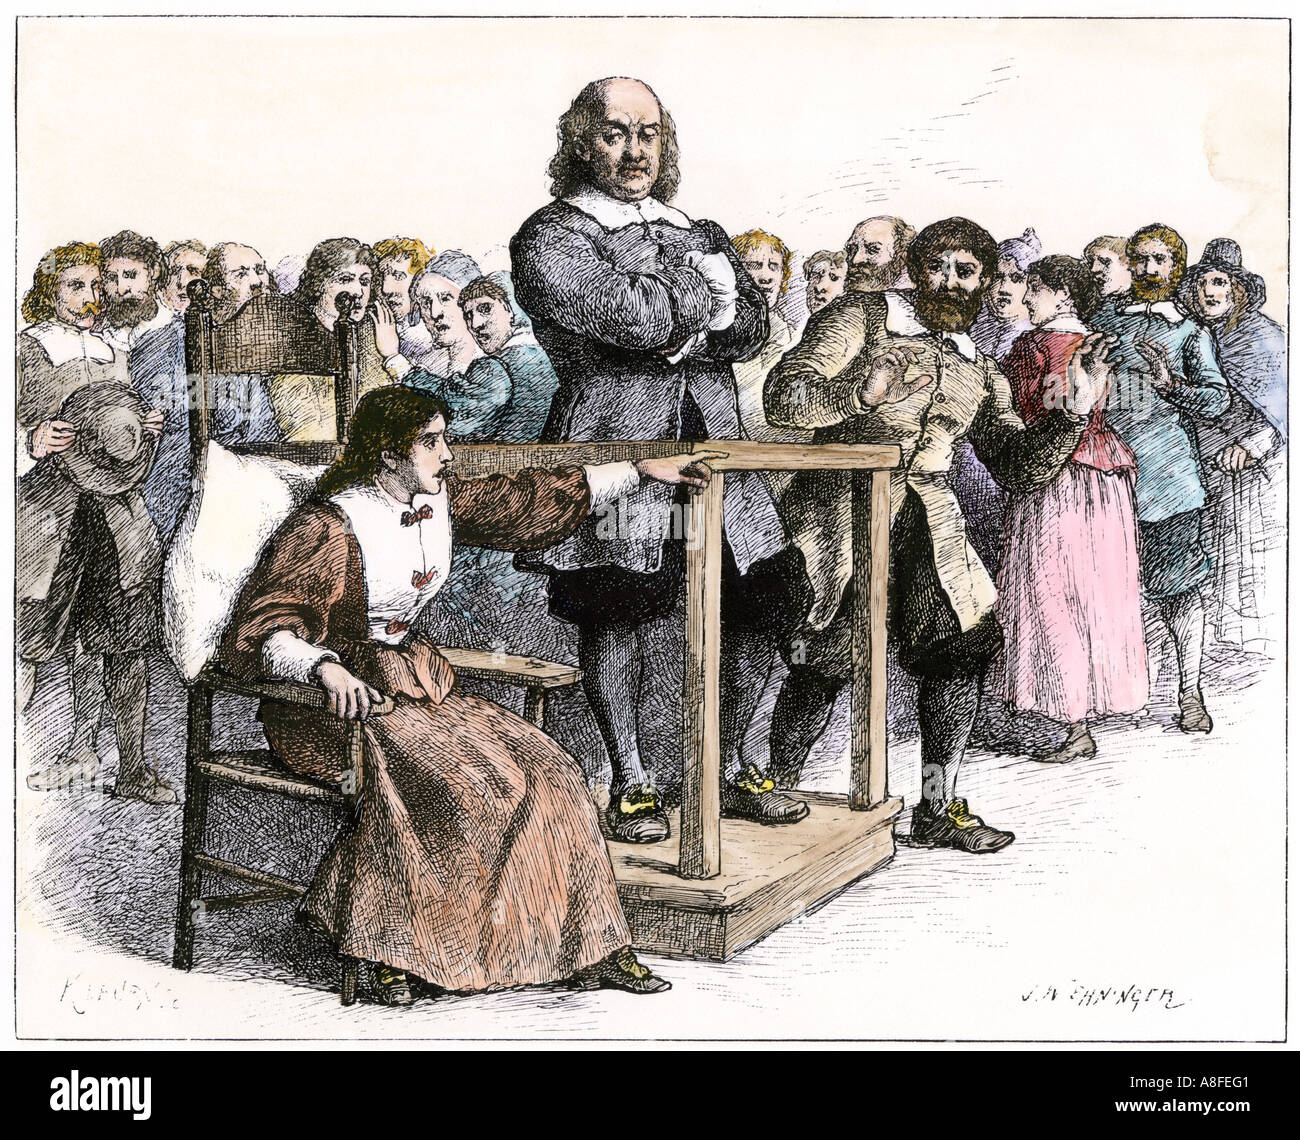 Witness testifying at the Salem witchcraft trials 1690s. Hand-colored woodcut - Stock Image